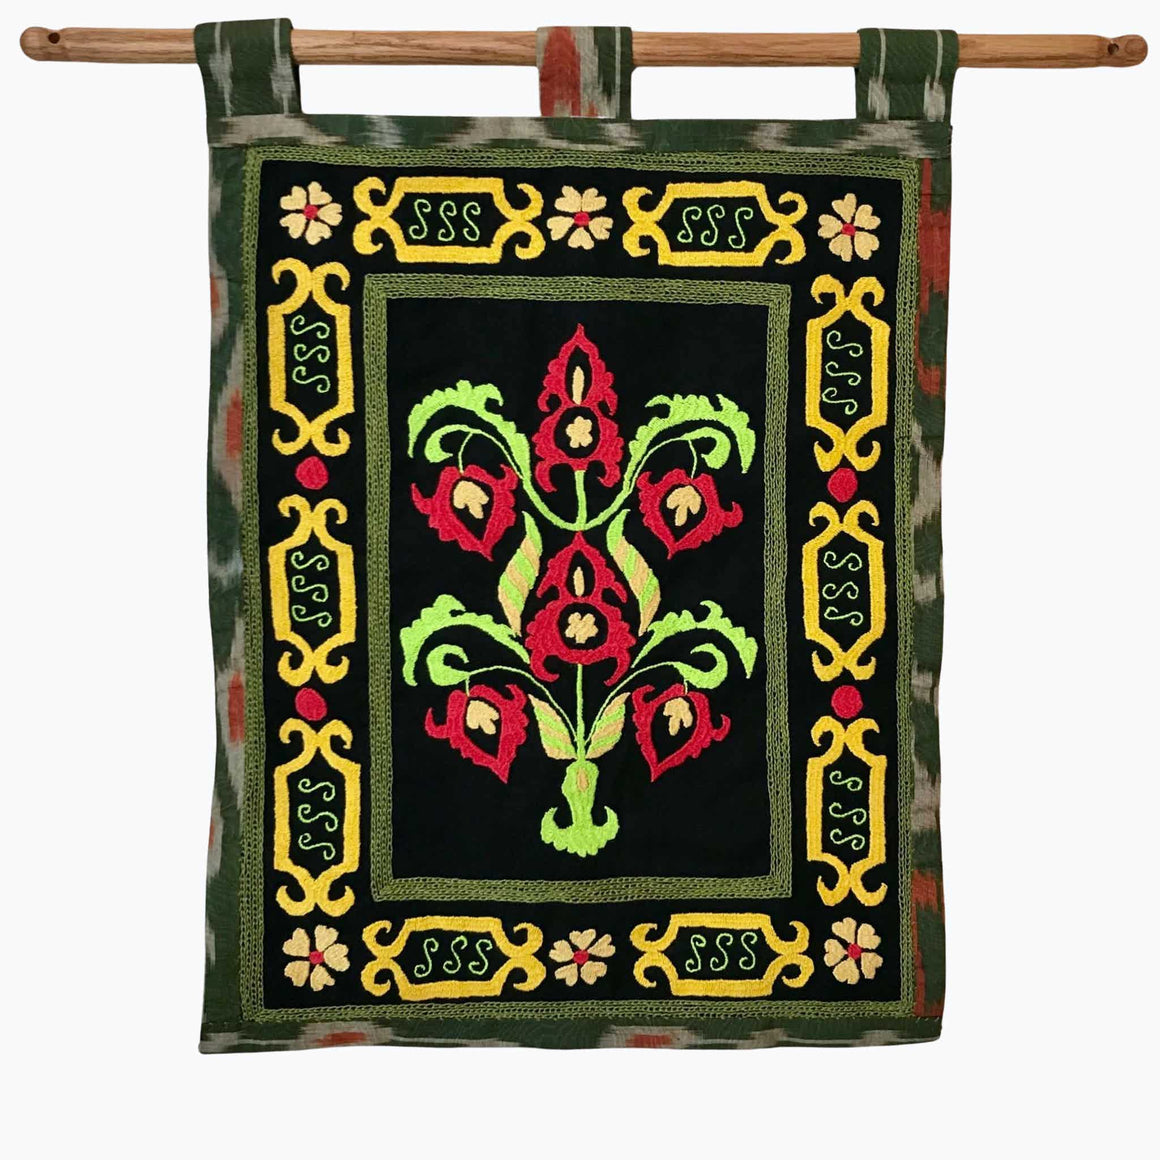 Hand Embroidered Suzani Wall Hanging Green on Black from Tajikistan | HoonArts